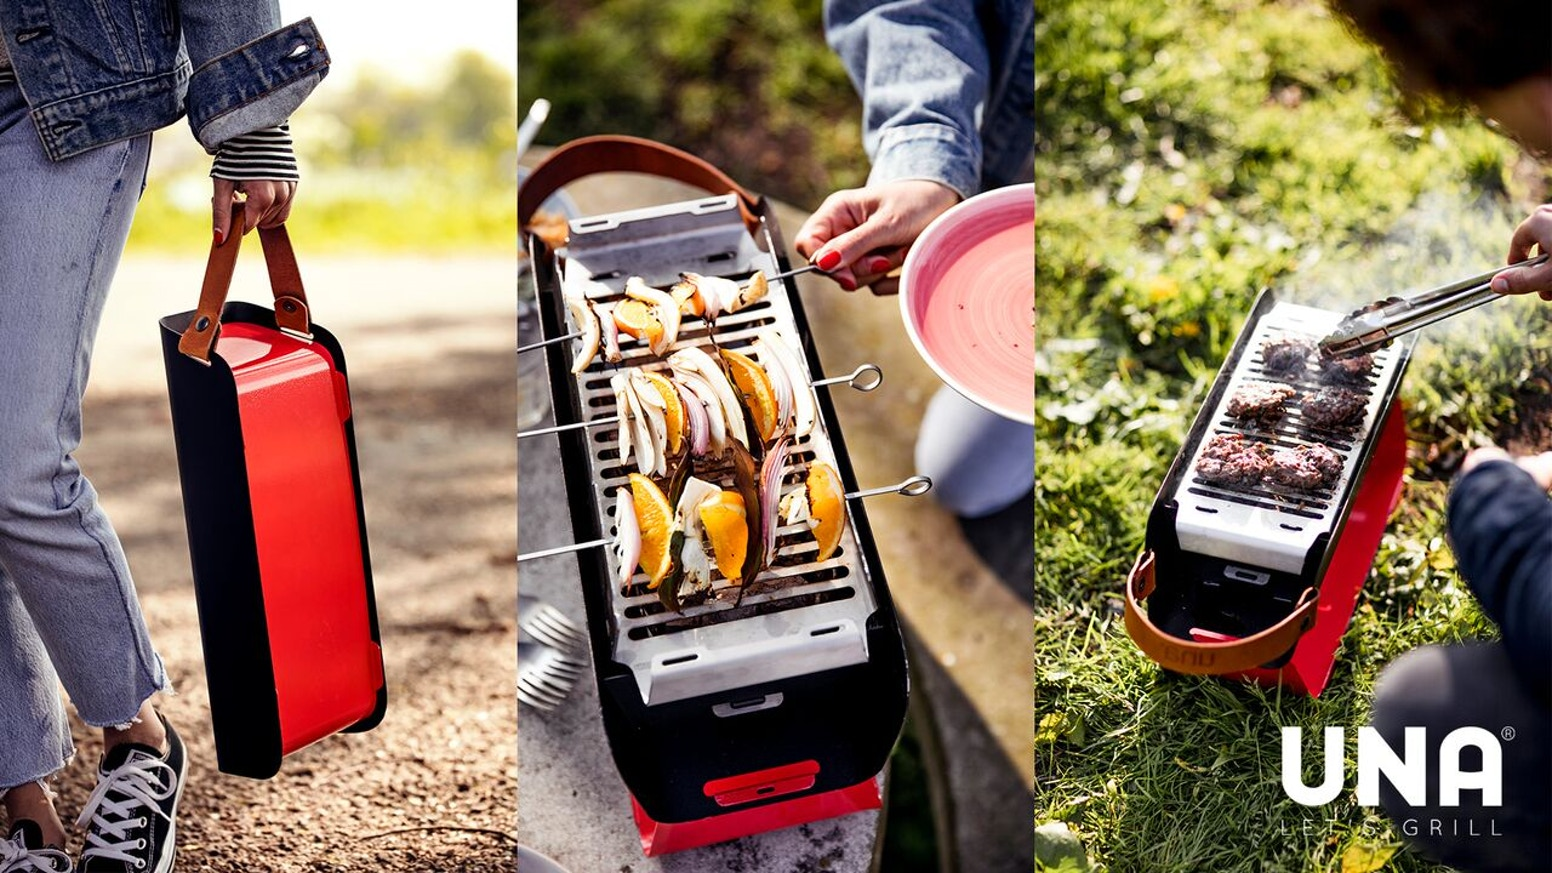 UNA is the smart, compact, portable charcoal grill. Now you can grill on your balcony, in the park, anywhere, year-round with UNA.